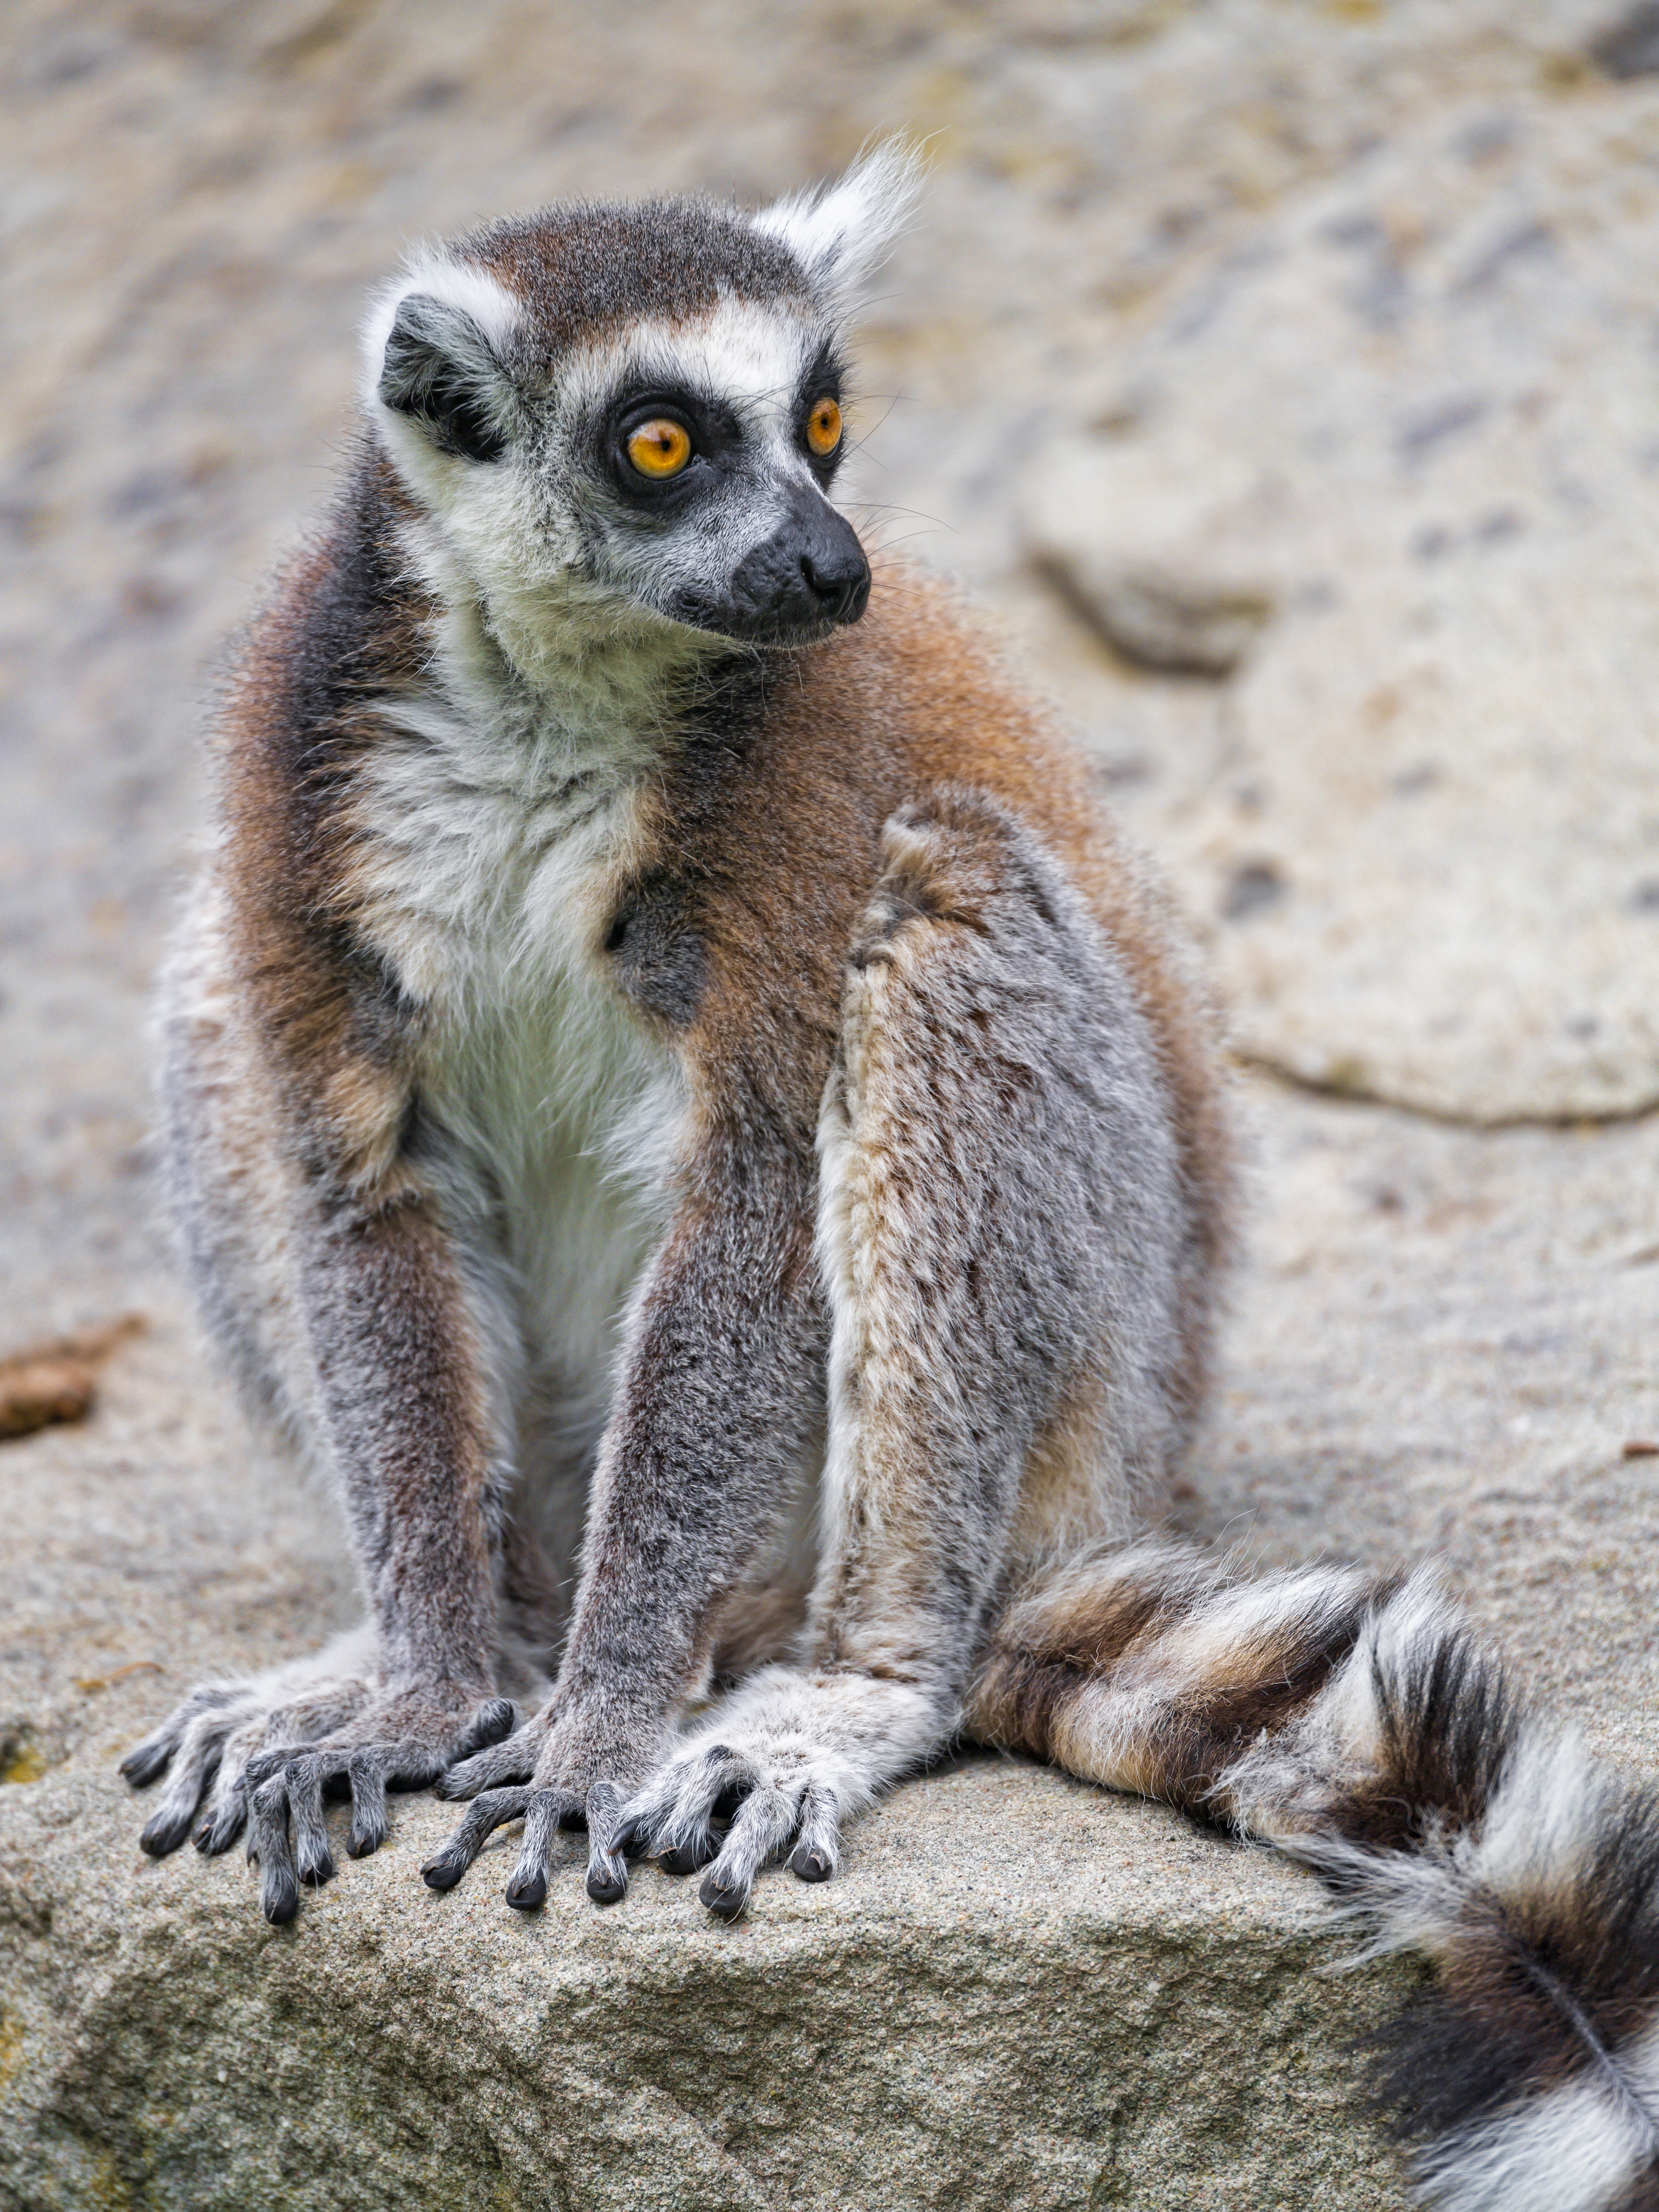 127889 download wallpaper Animals, Lemur, Sight, Opinion, Animal, Fluffy screensavers and pictures for free